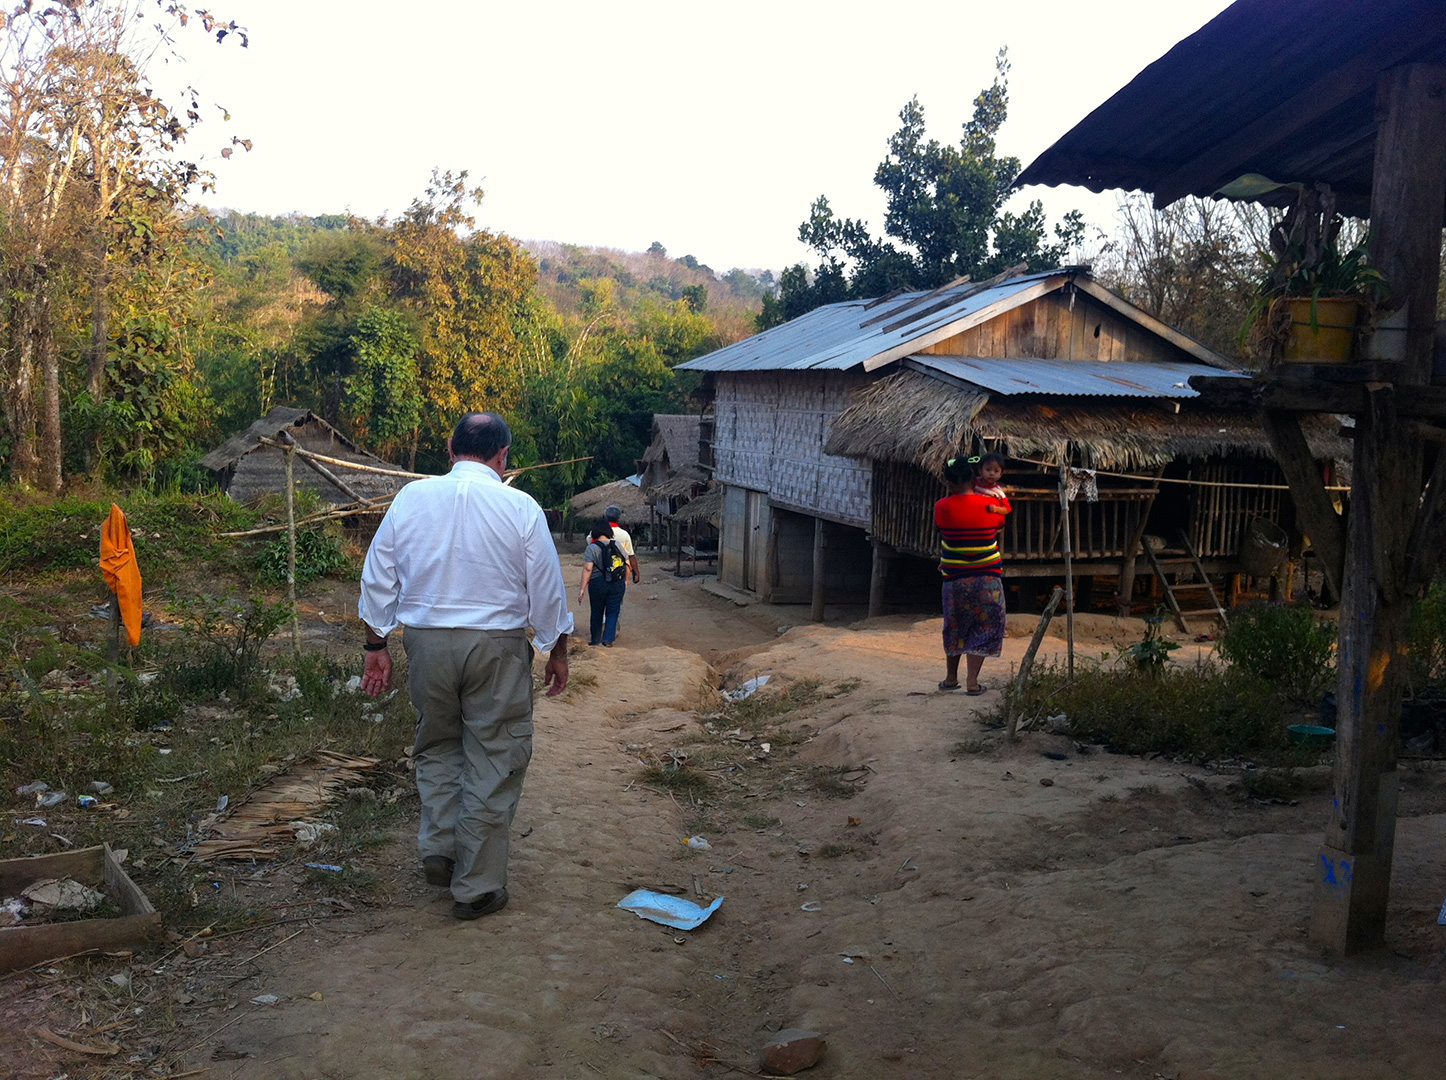 Heading down to the water source of Fung Na community